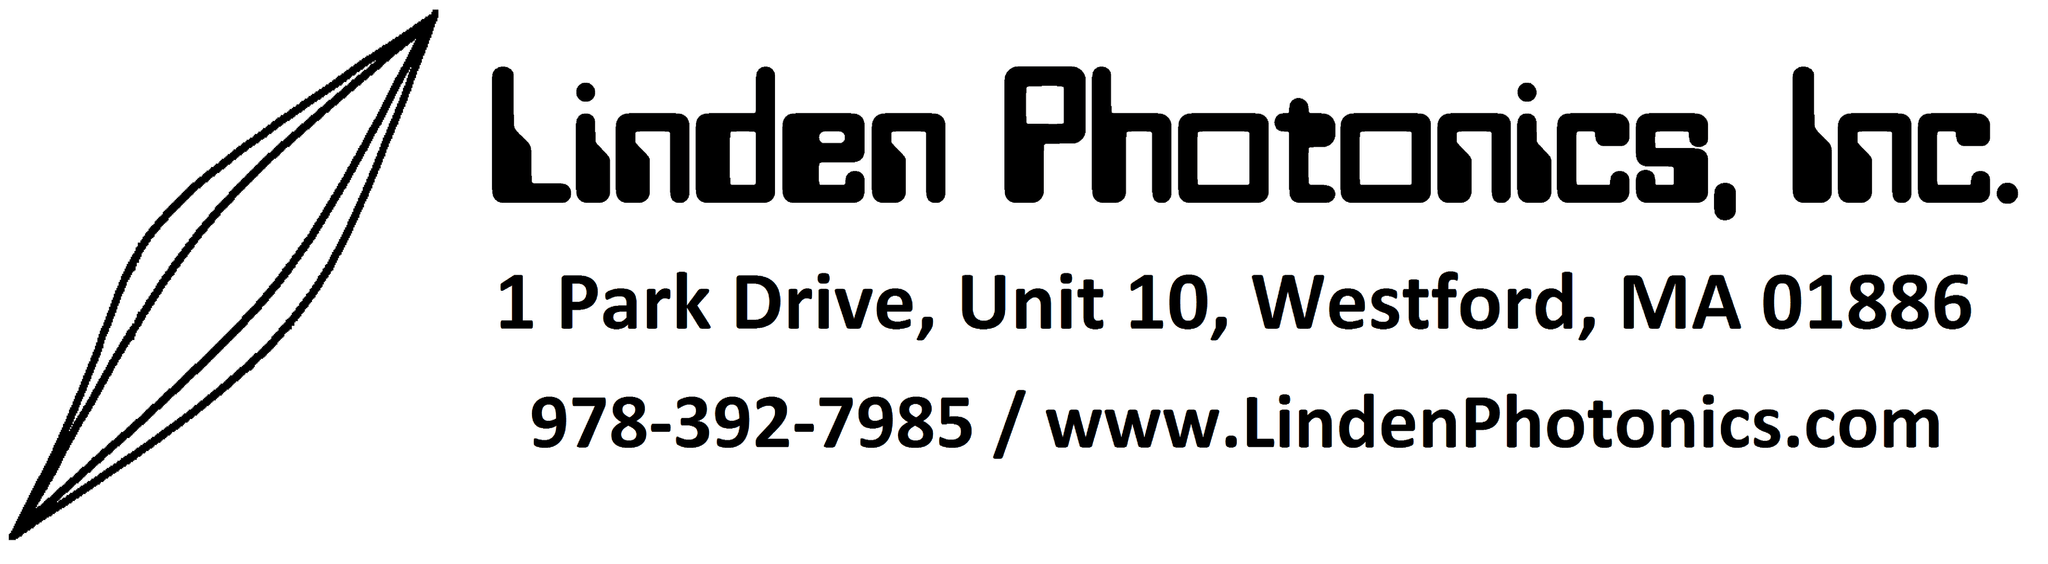 Linden Photonics, Inc.